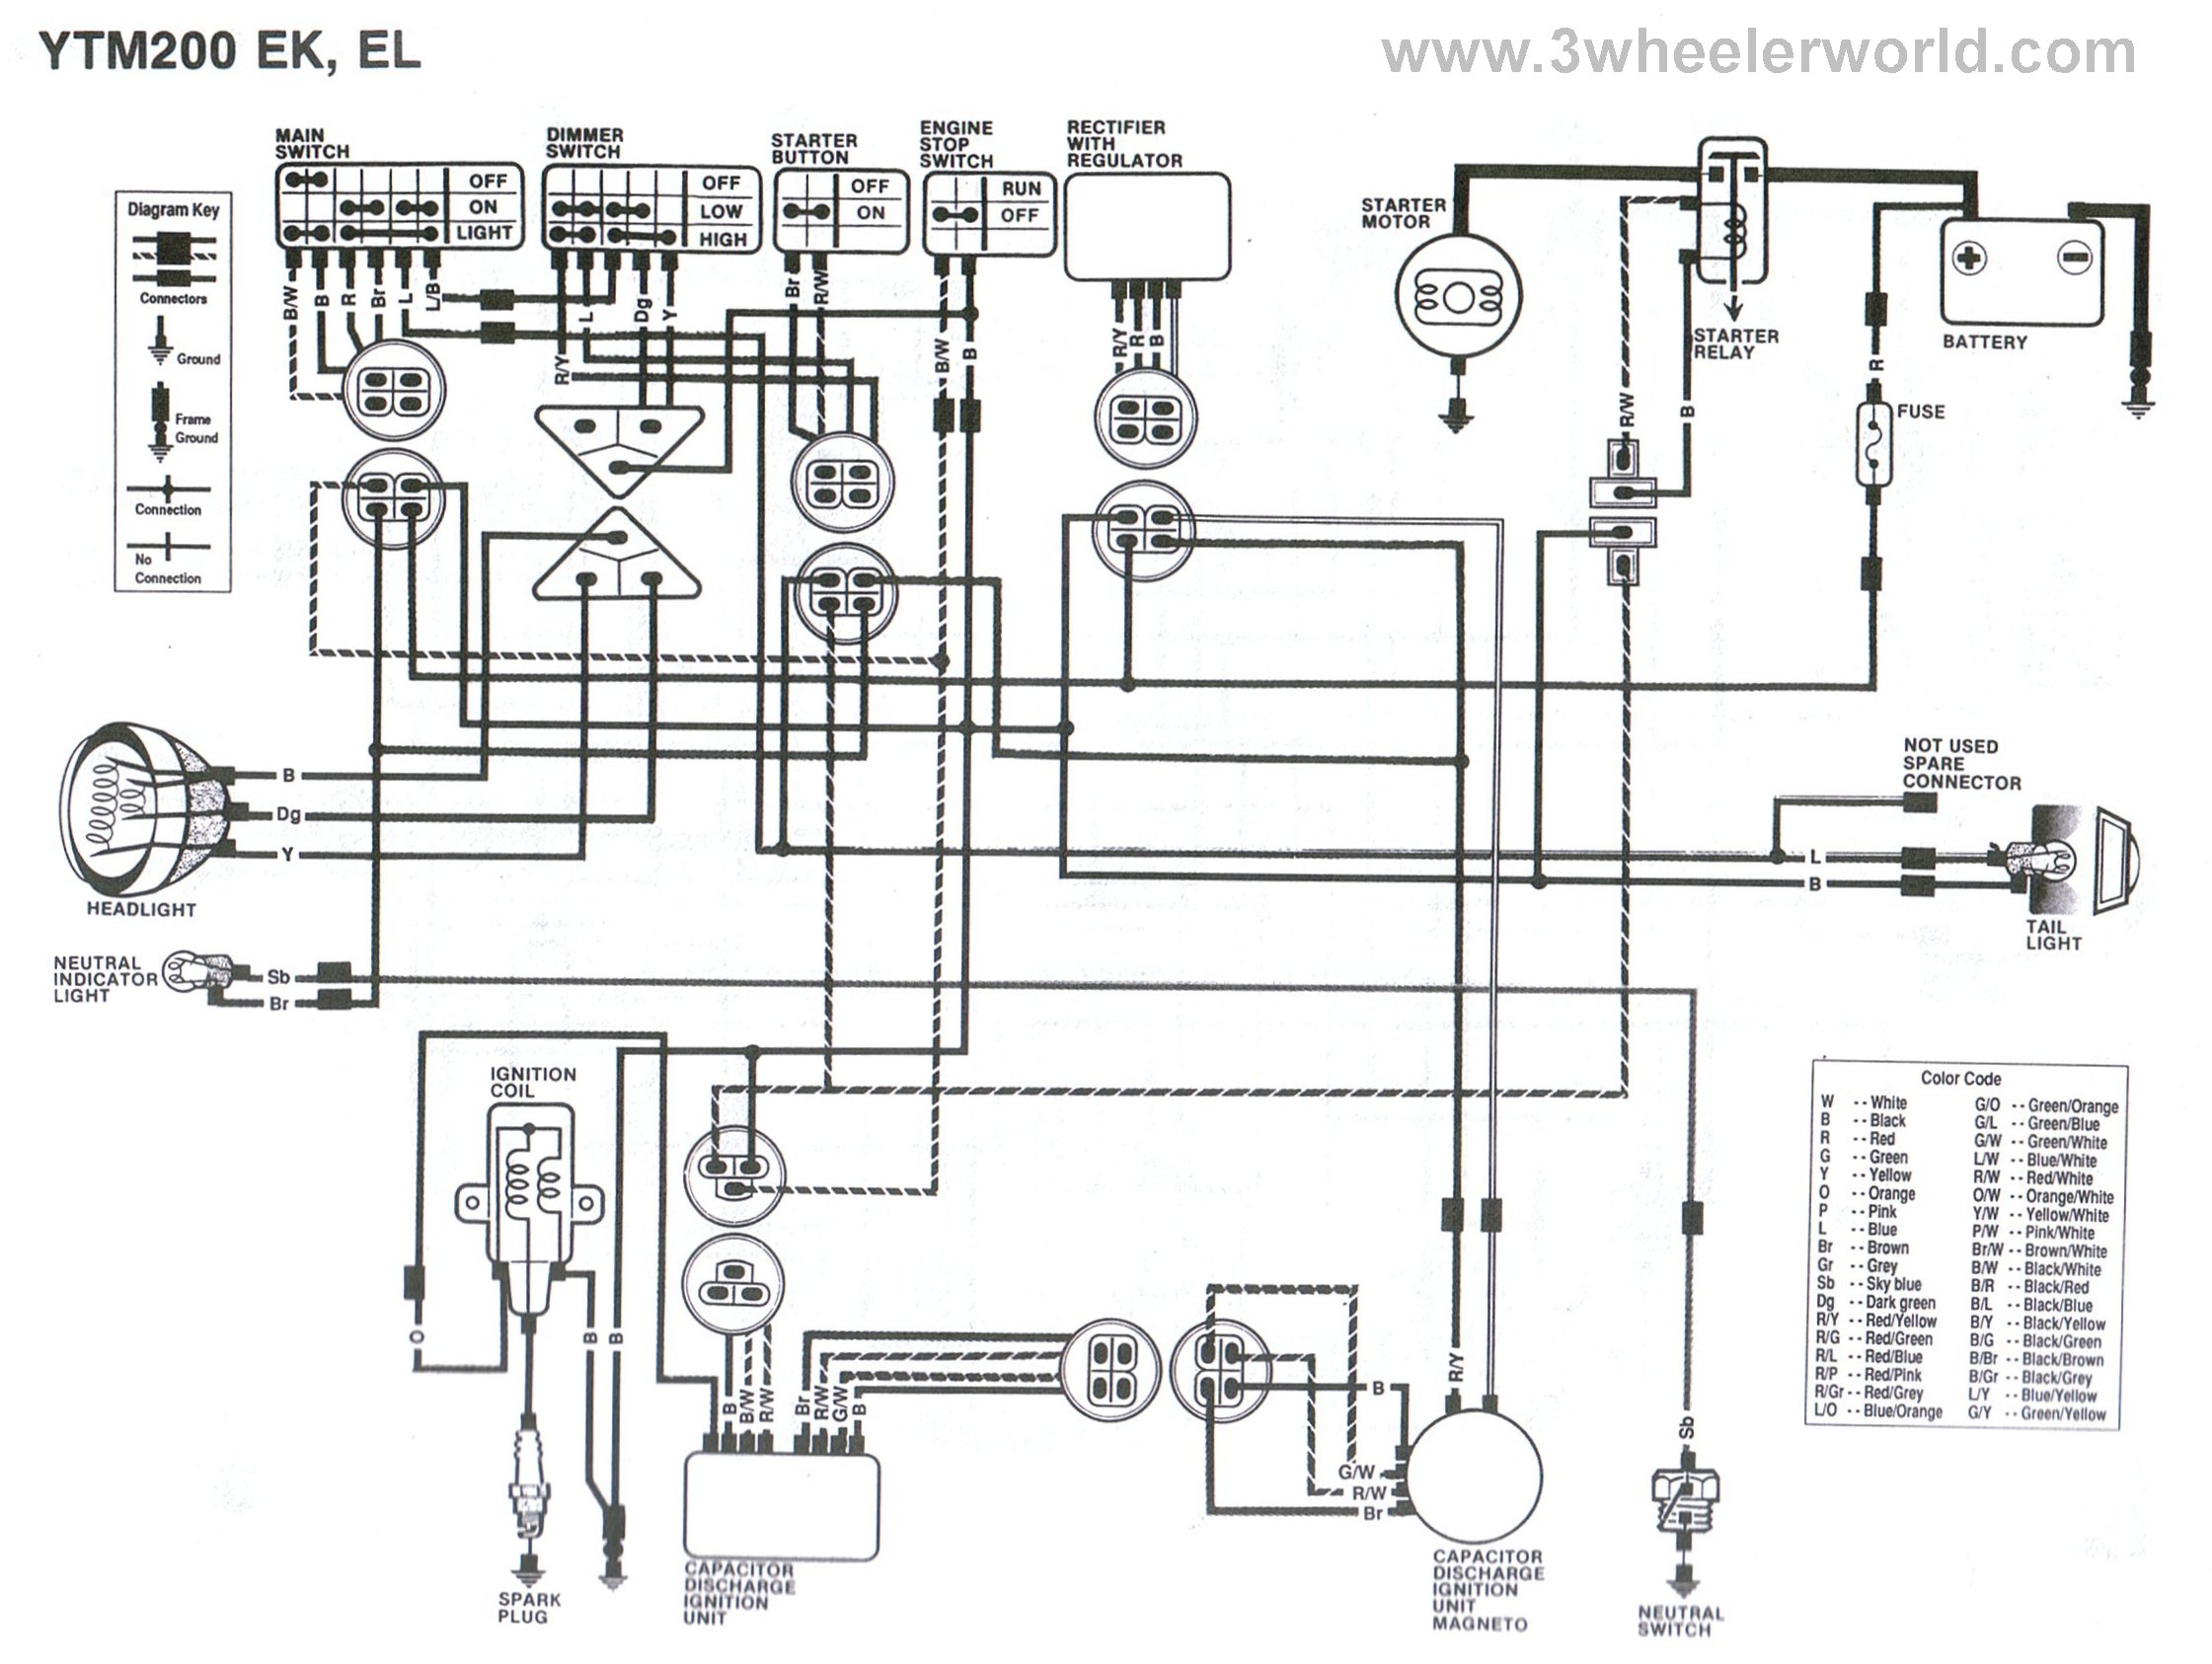 Yamaha Vmax 225 Wiring Diagram Third Level 650 Symbols Todays 110cc Mini Chopper 84 Dx